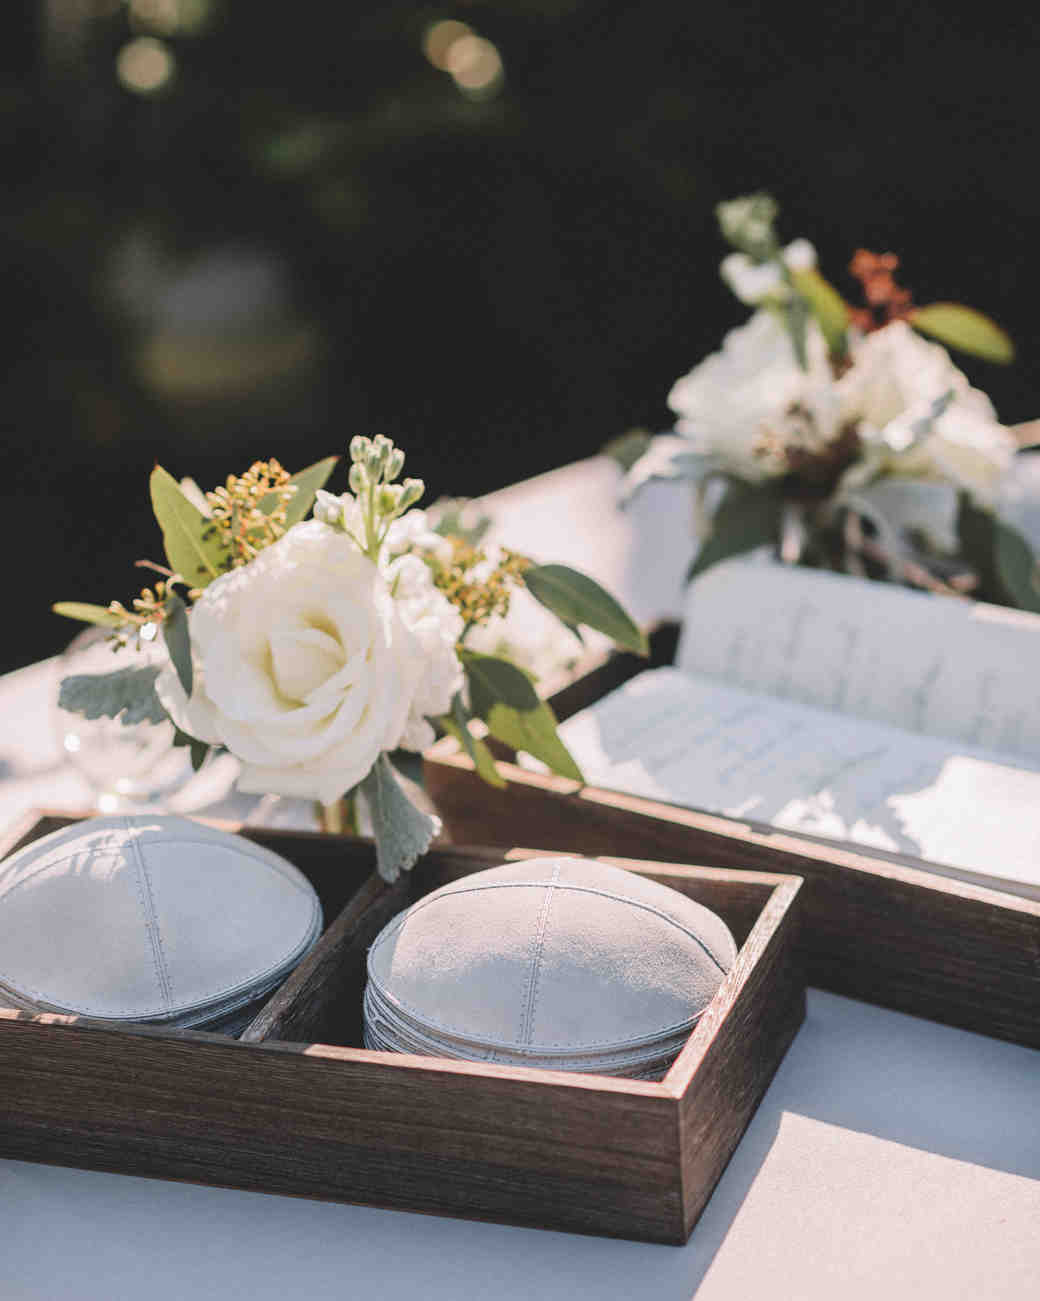 gray yarmulkes in wood box organizer on table with white flowers